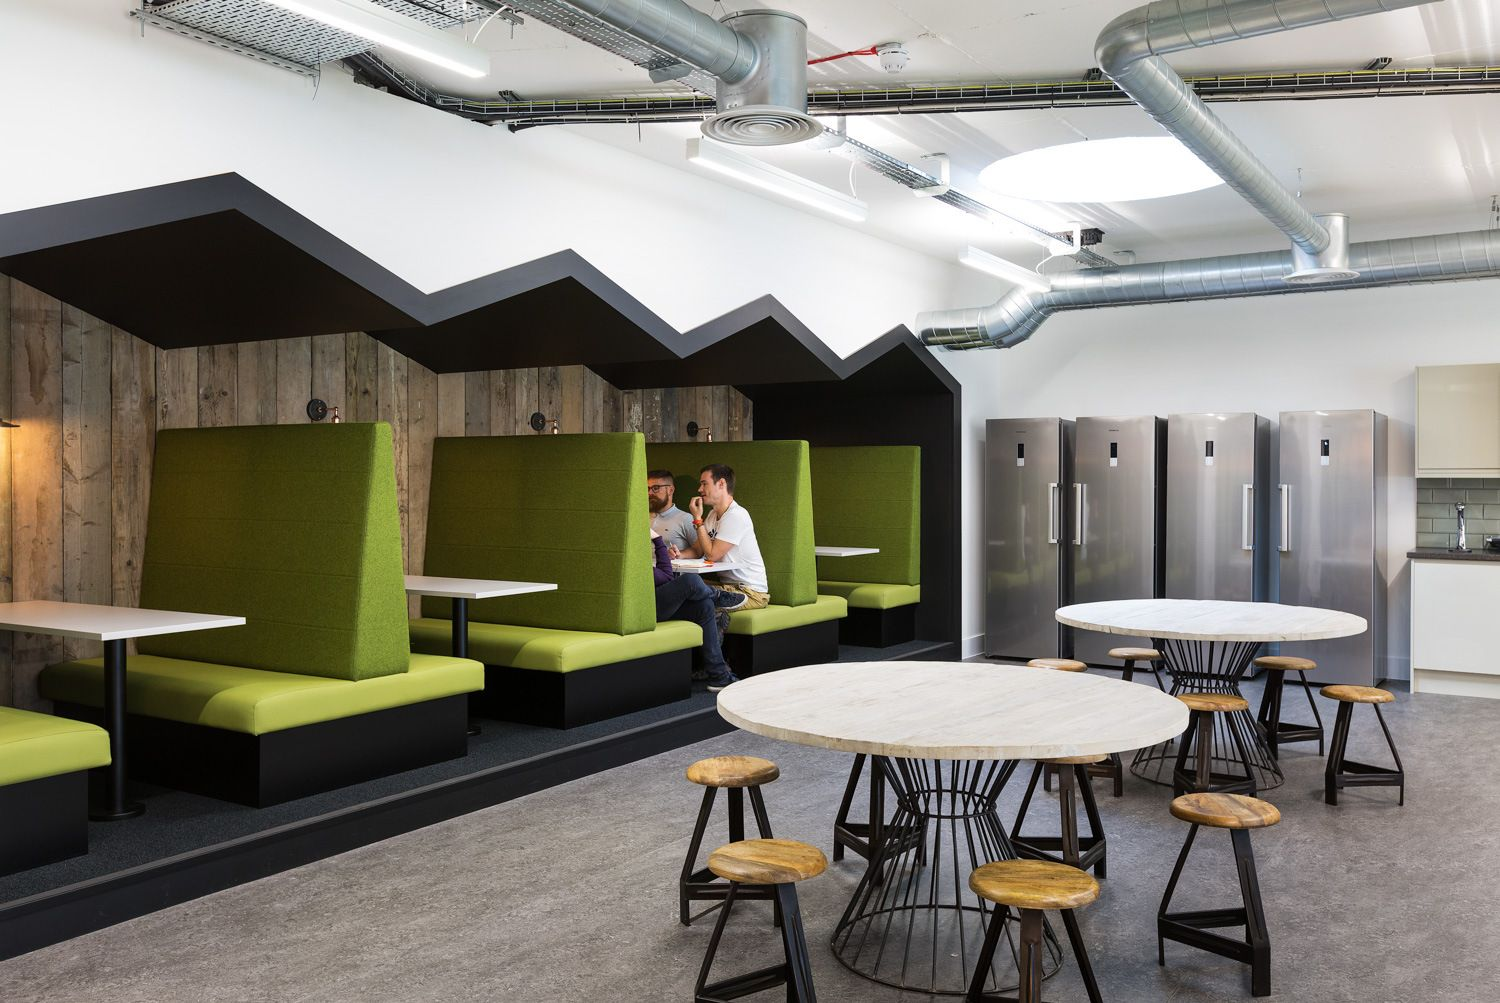 Office tour merkle periscopix offices london recent for Built in booth